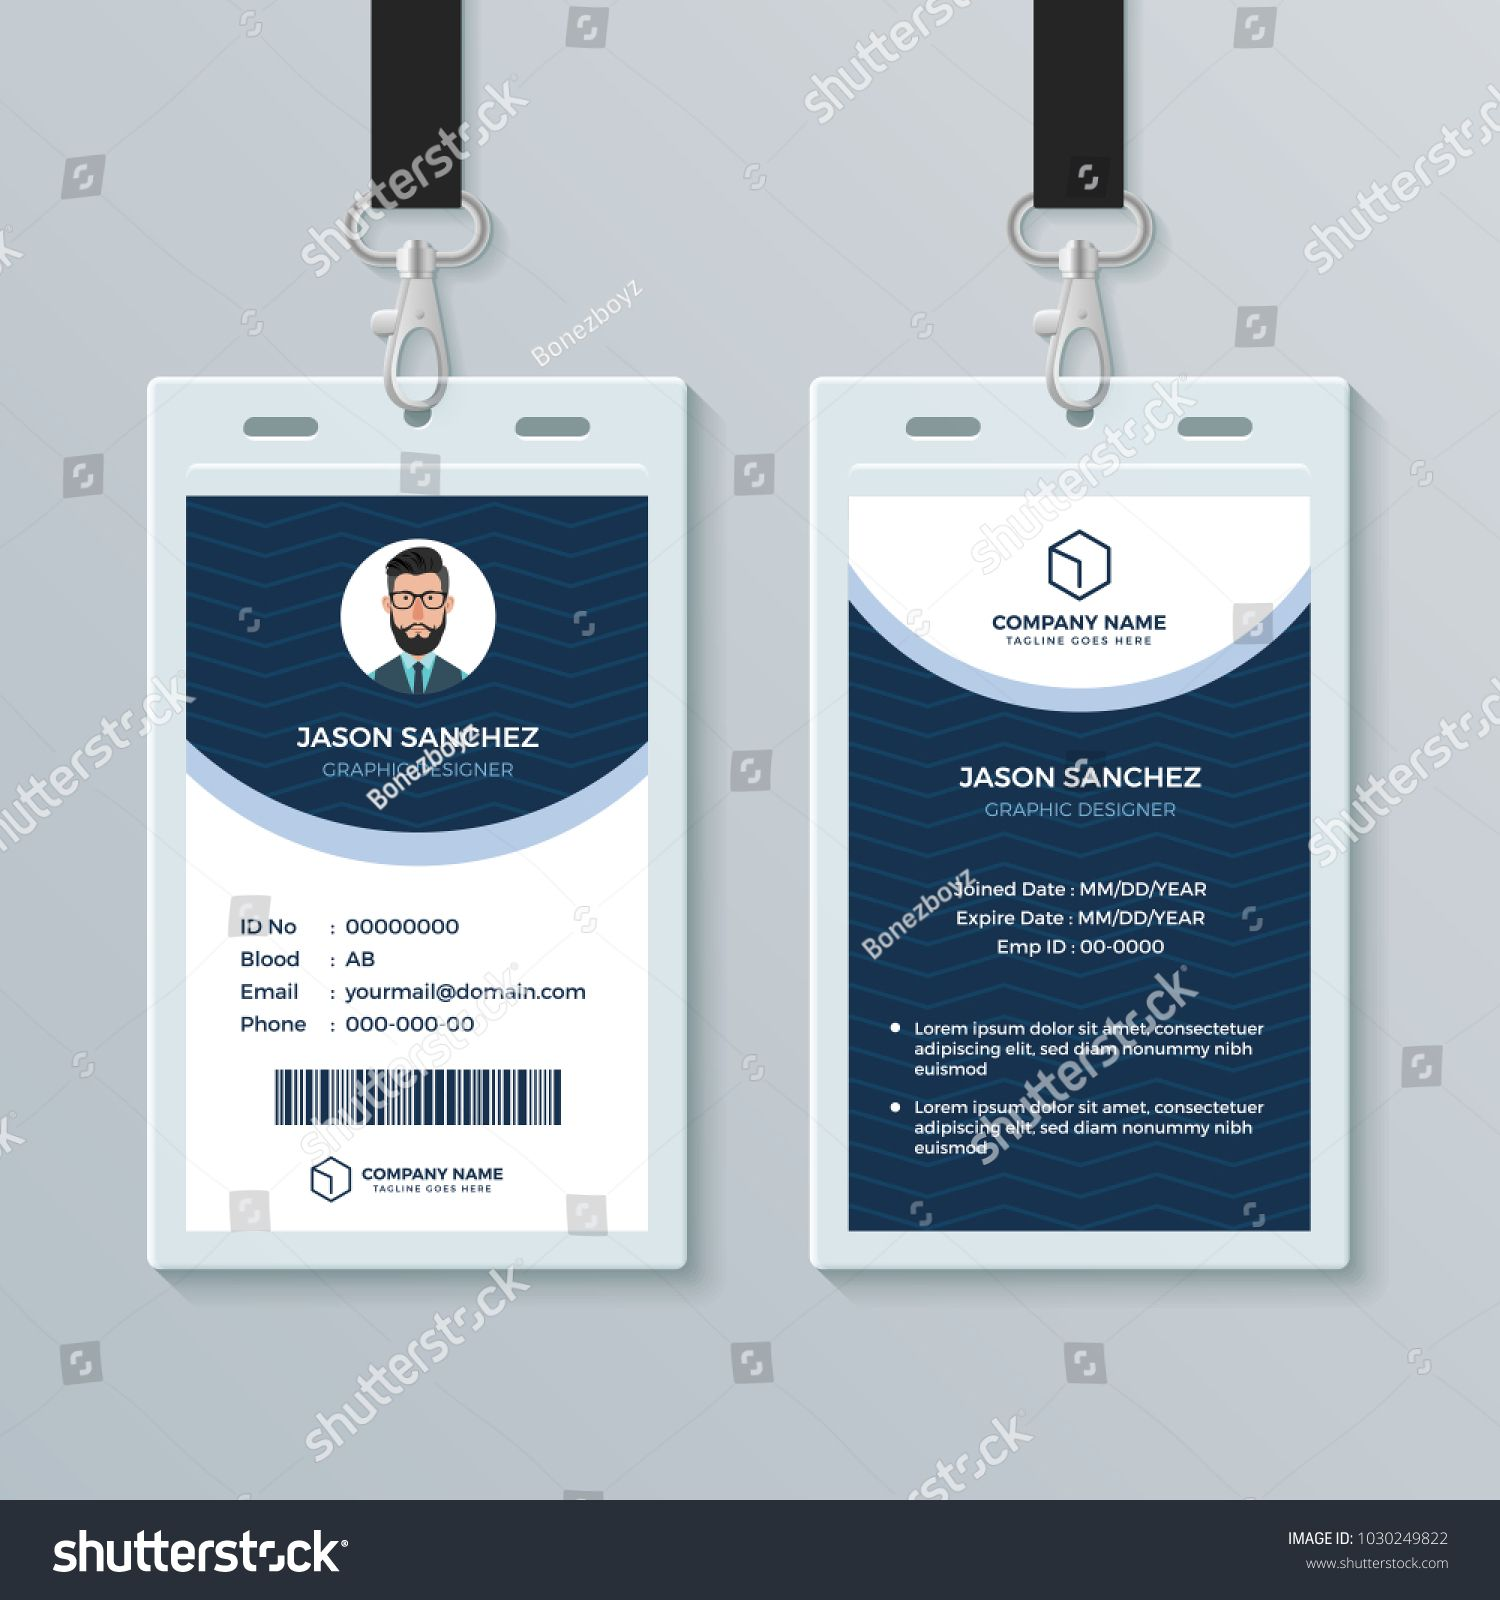 This Id Card Template Perfect For Any Types Of Agency Corporate